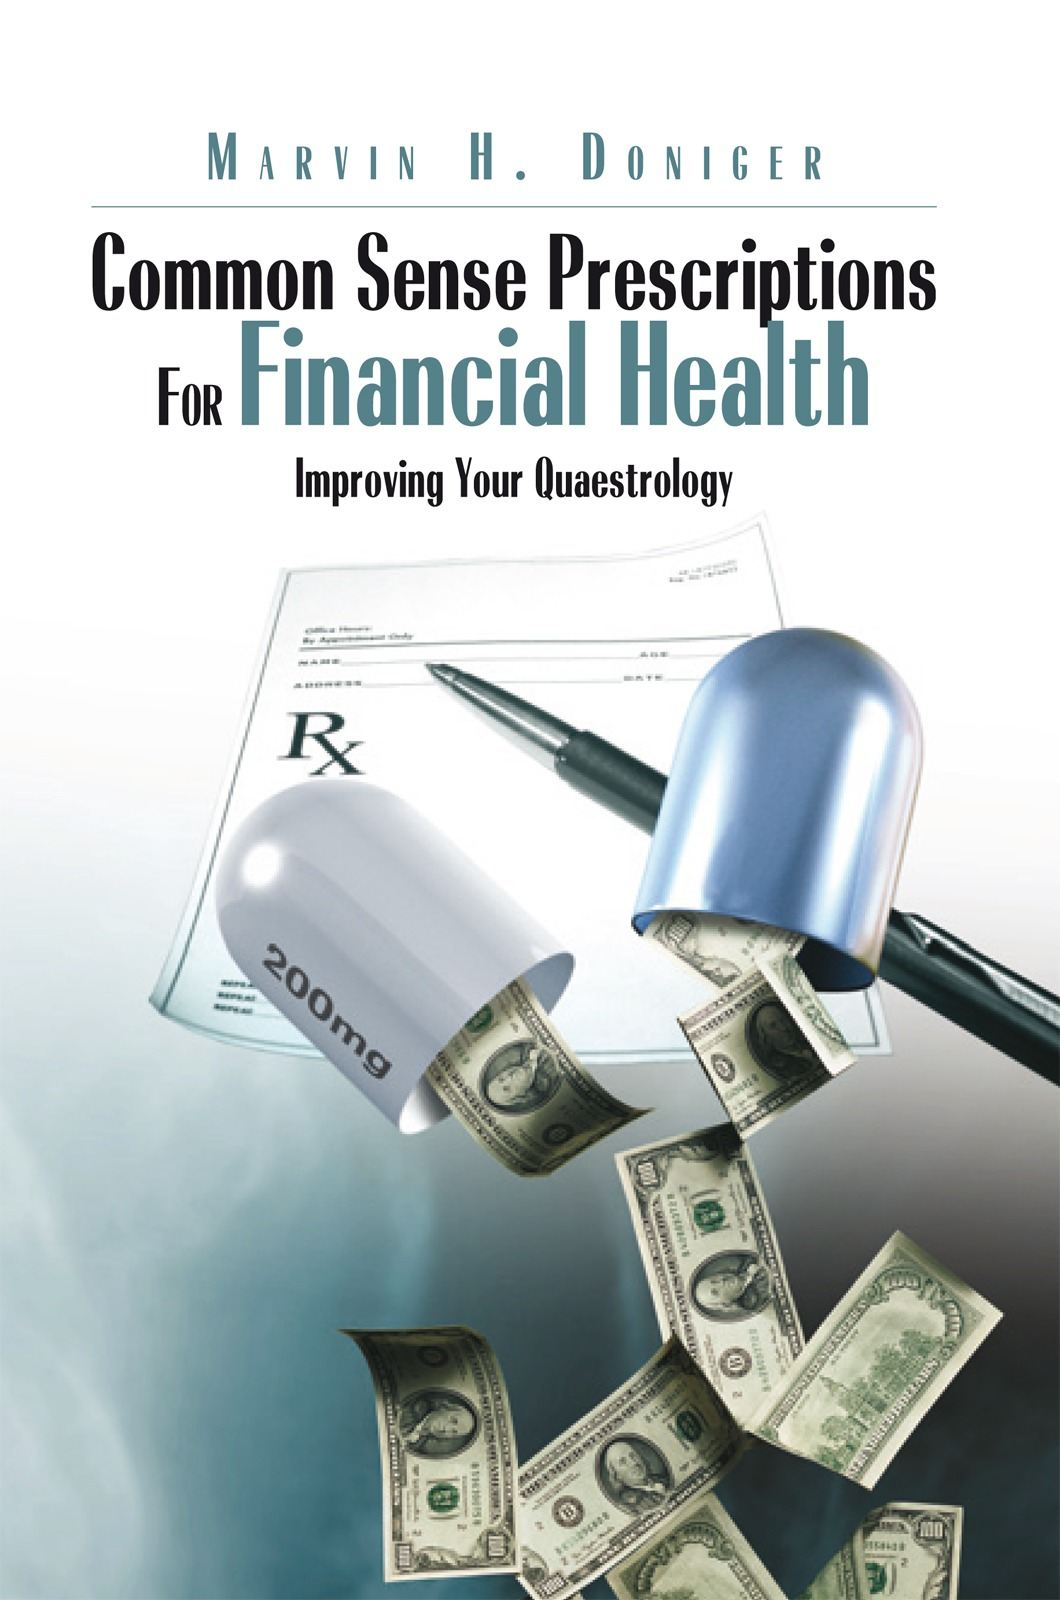 Common Sense Prescriptions For Financial Health By: Marvin H. Doniger